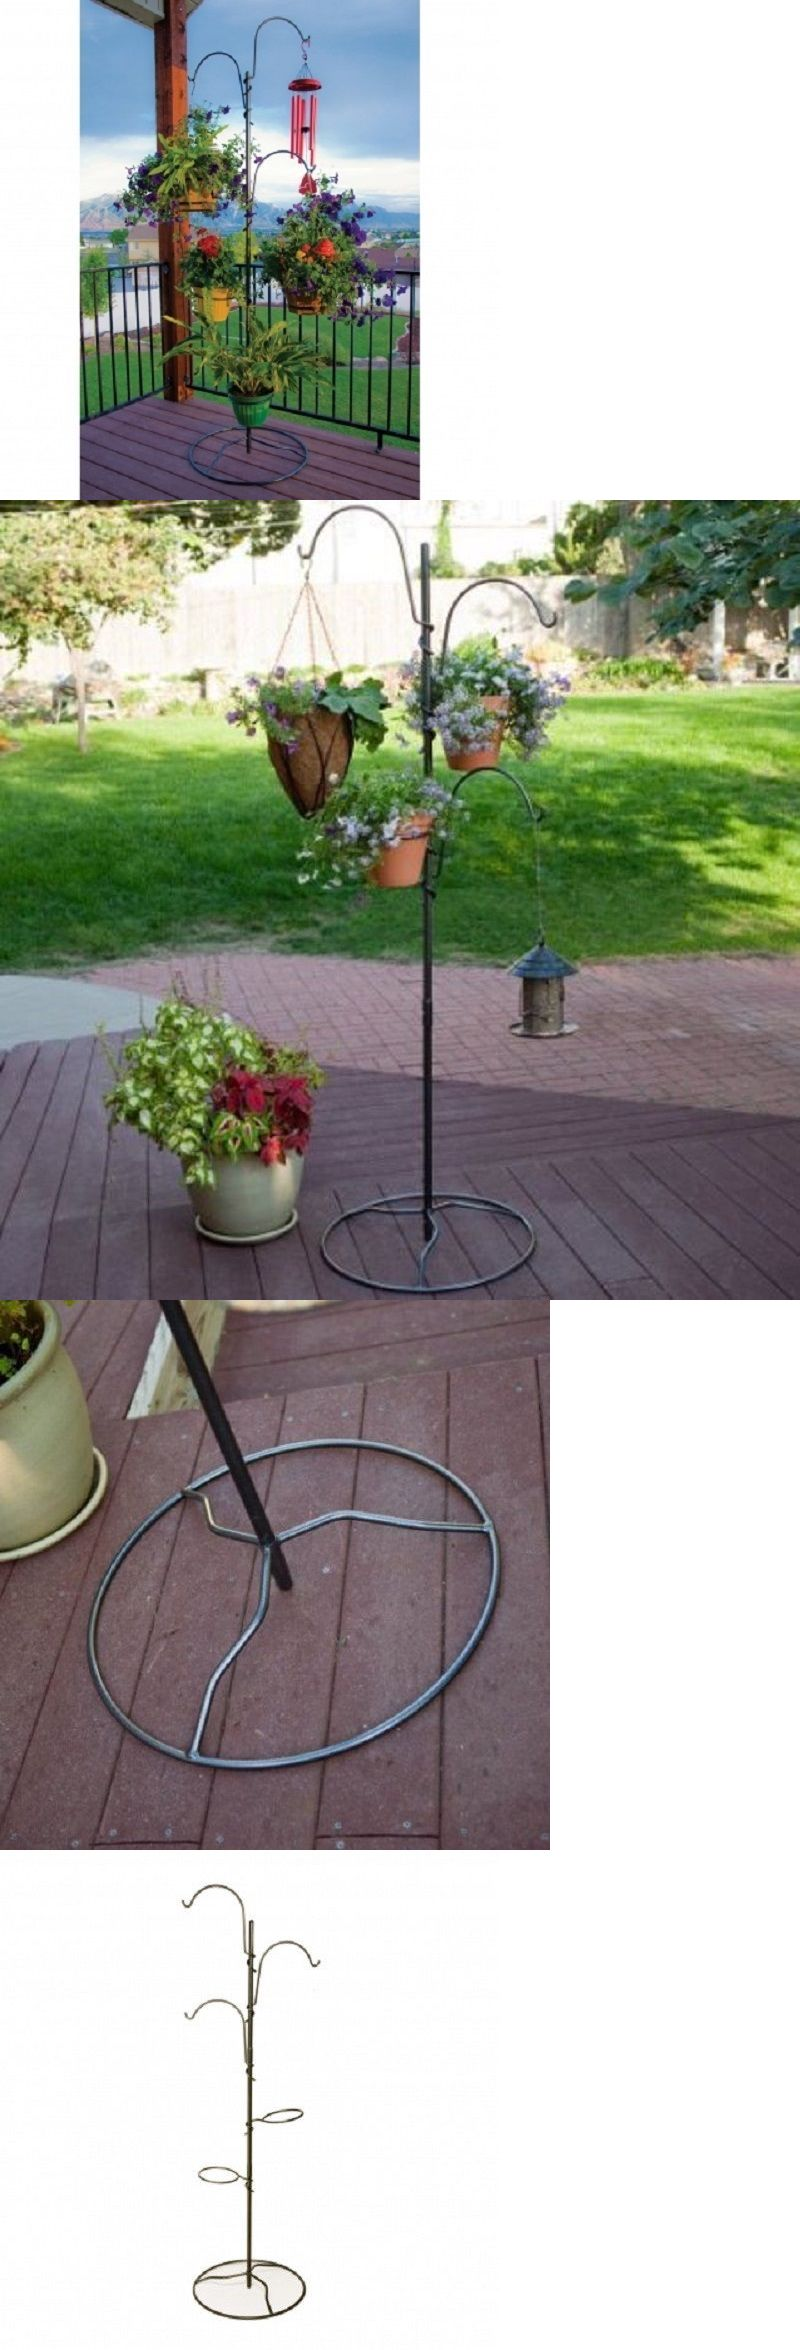 Plant Stands 29514: Hanging Plant Stand Flower Baskets Pots Balcony Deck  Patio Porch Outdoor Indoor